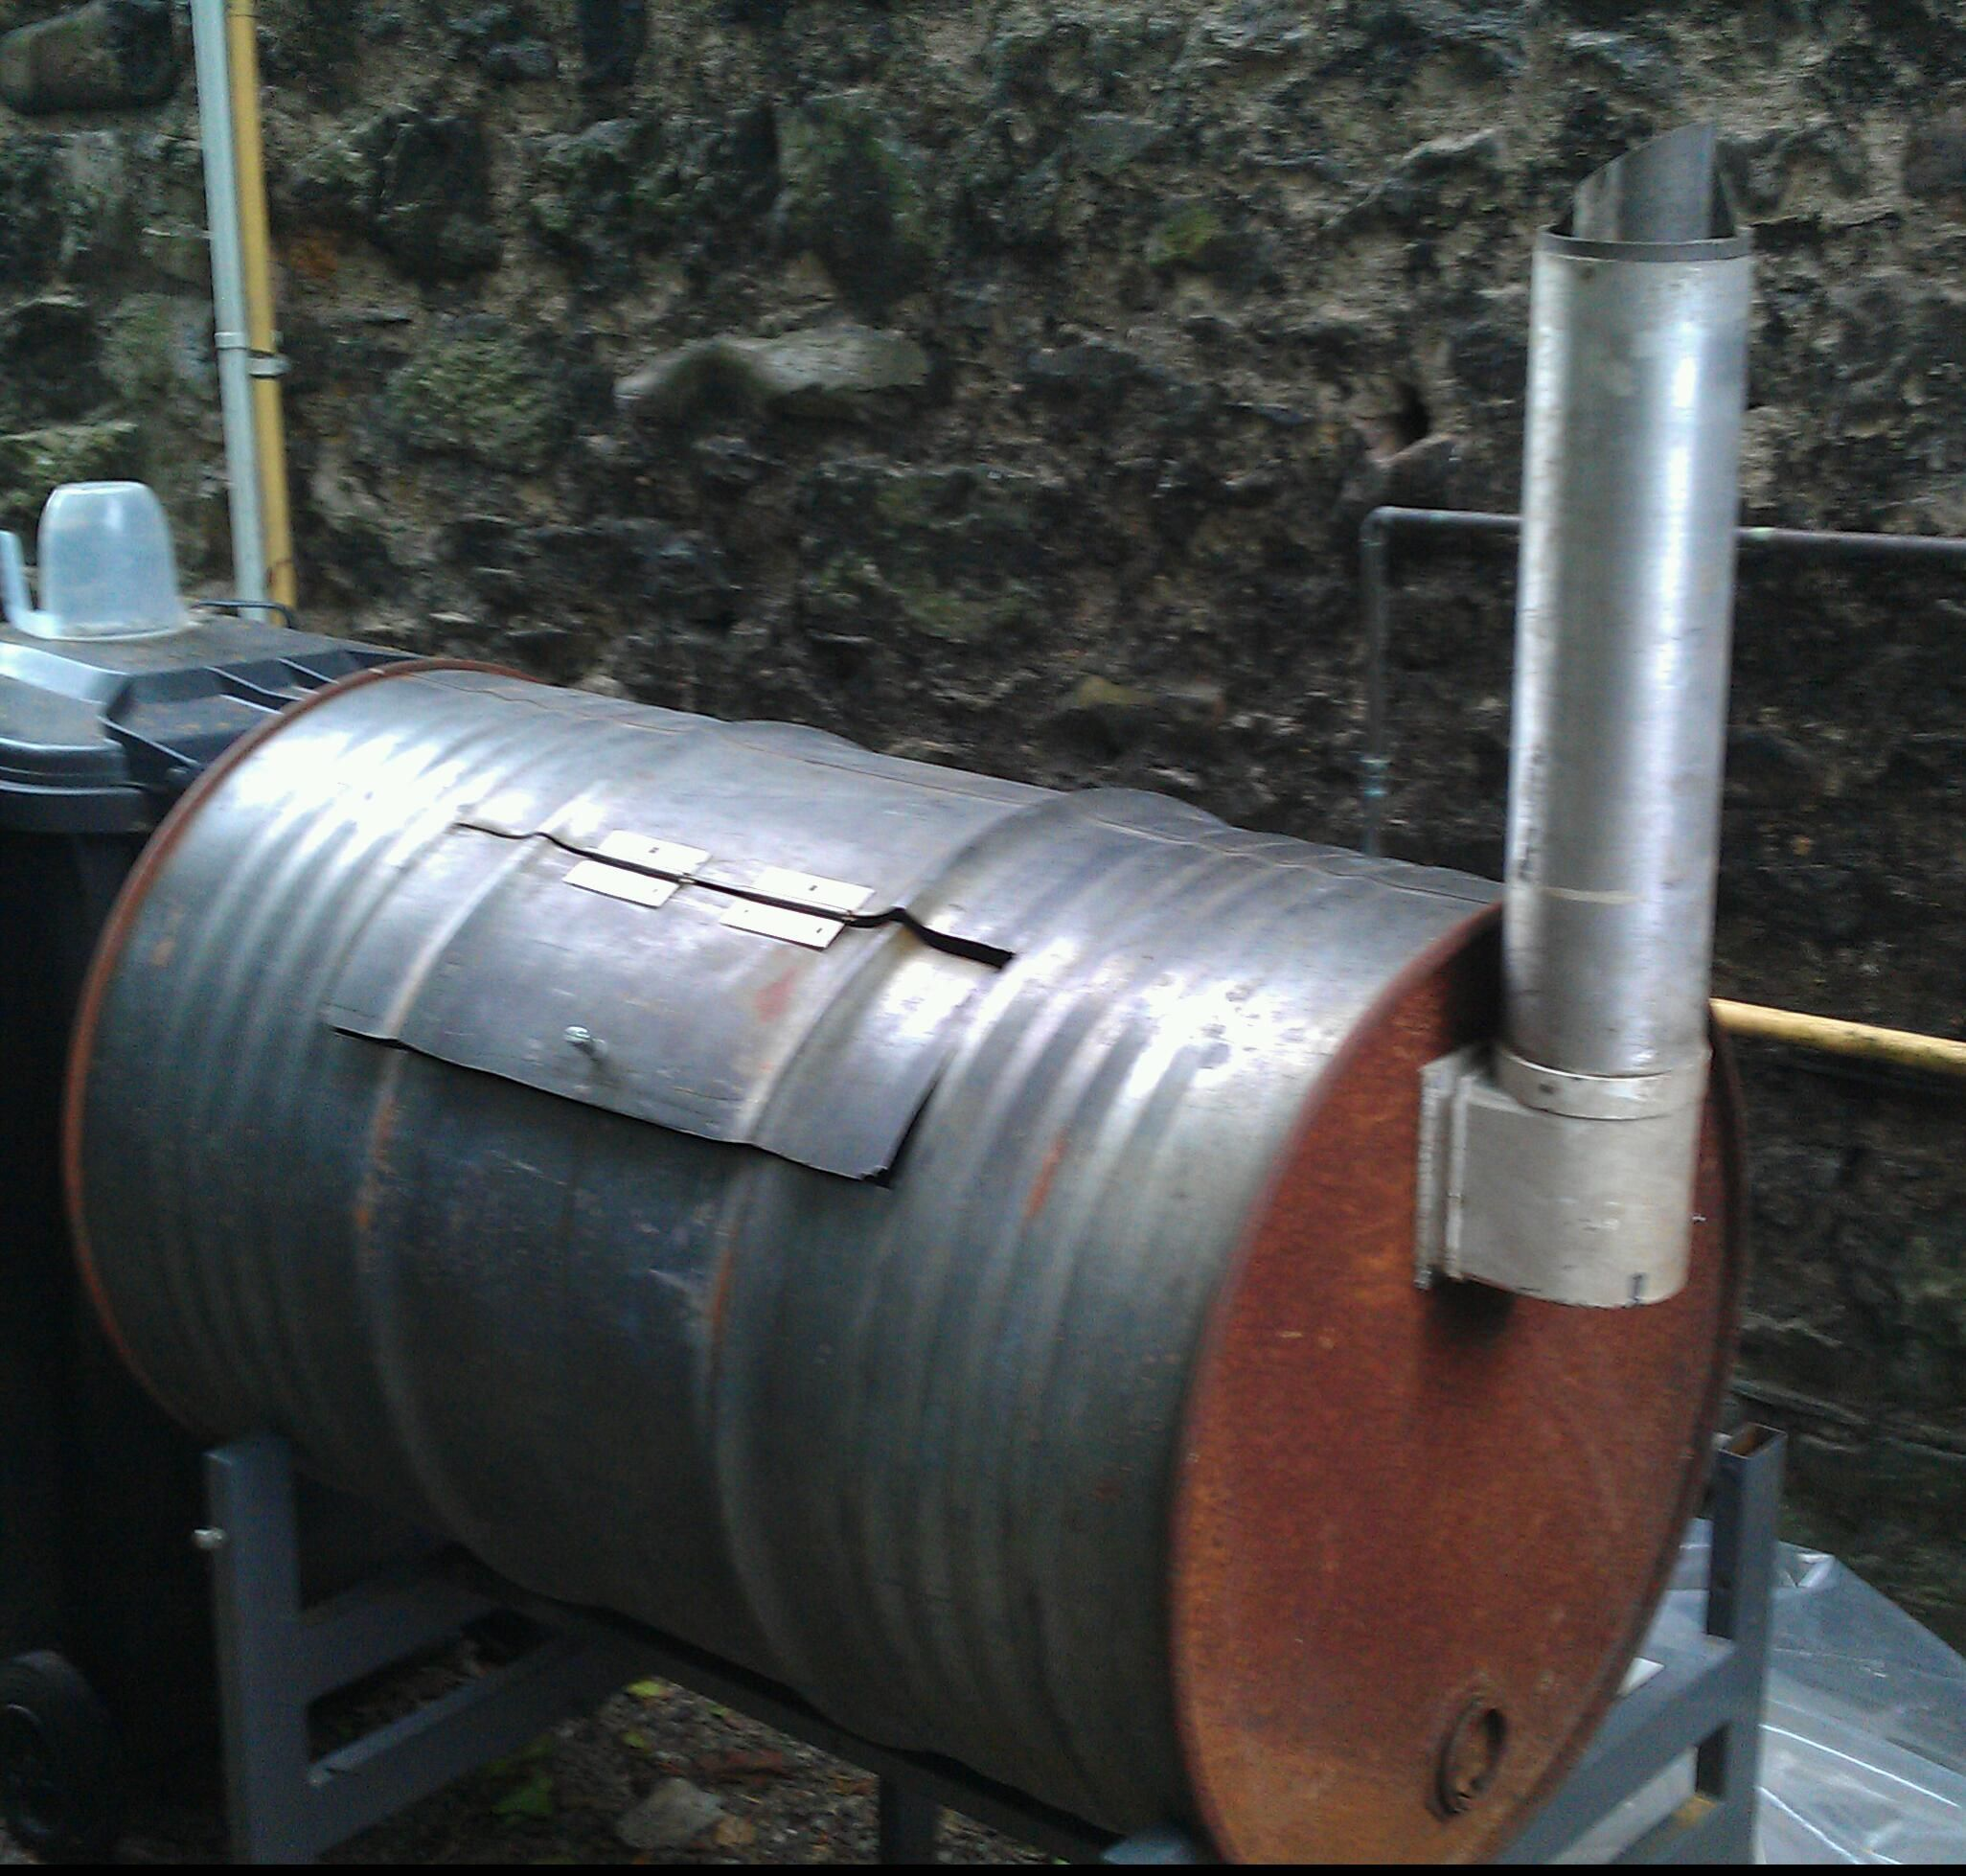 A Smoker Is An Outdoor Cooking Liance That Can Maintain Low Temperatures For Extended Periods